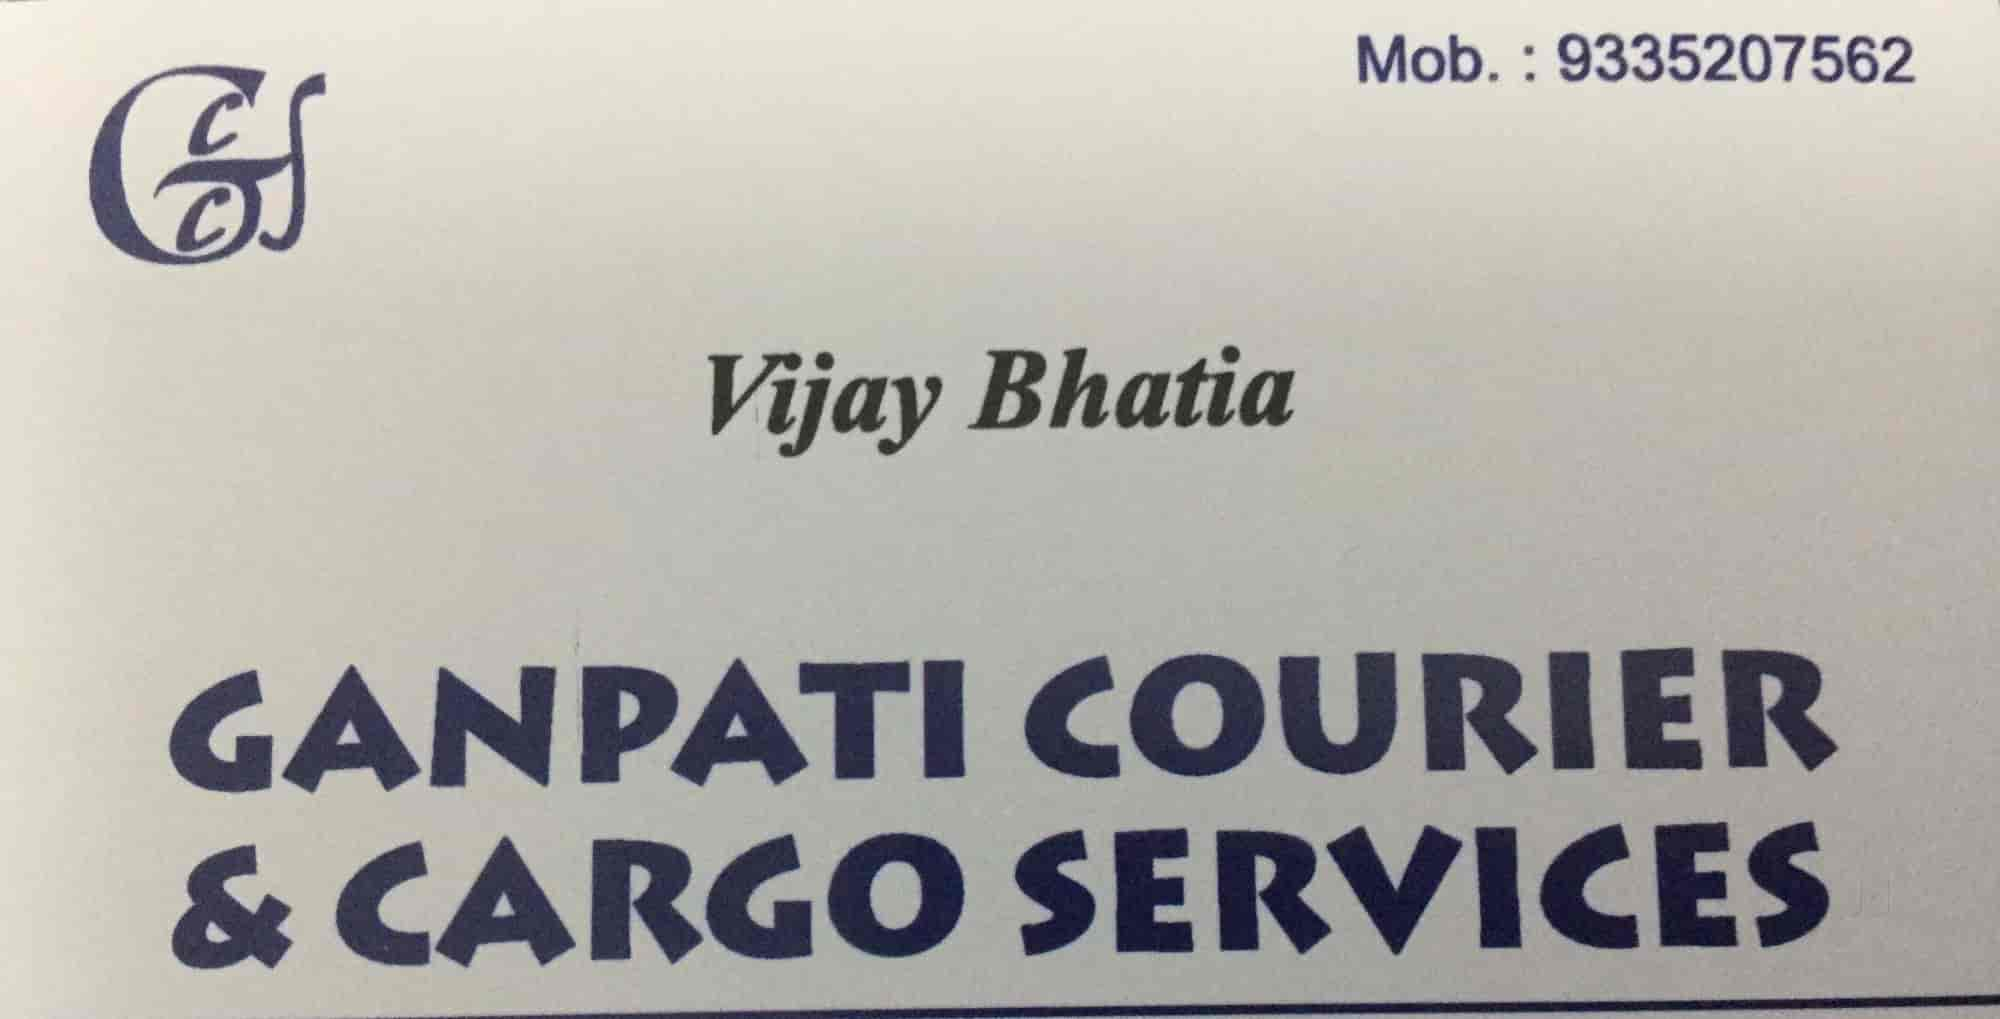 Ganpati Courier & Cargo Services, Charbagh - Courier